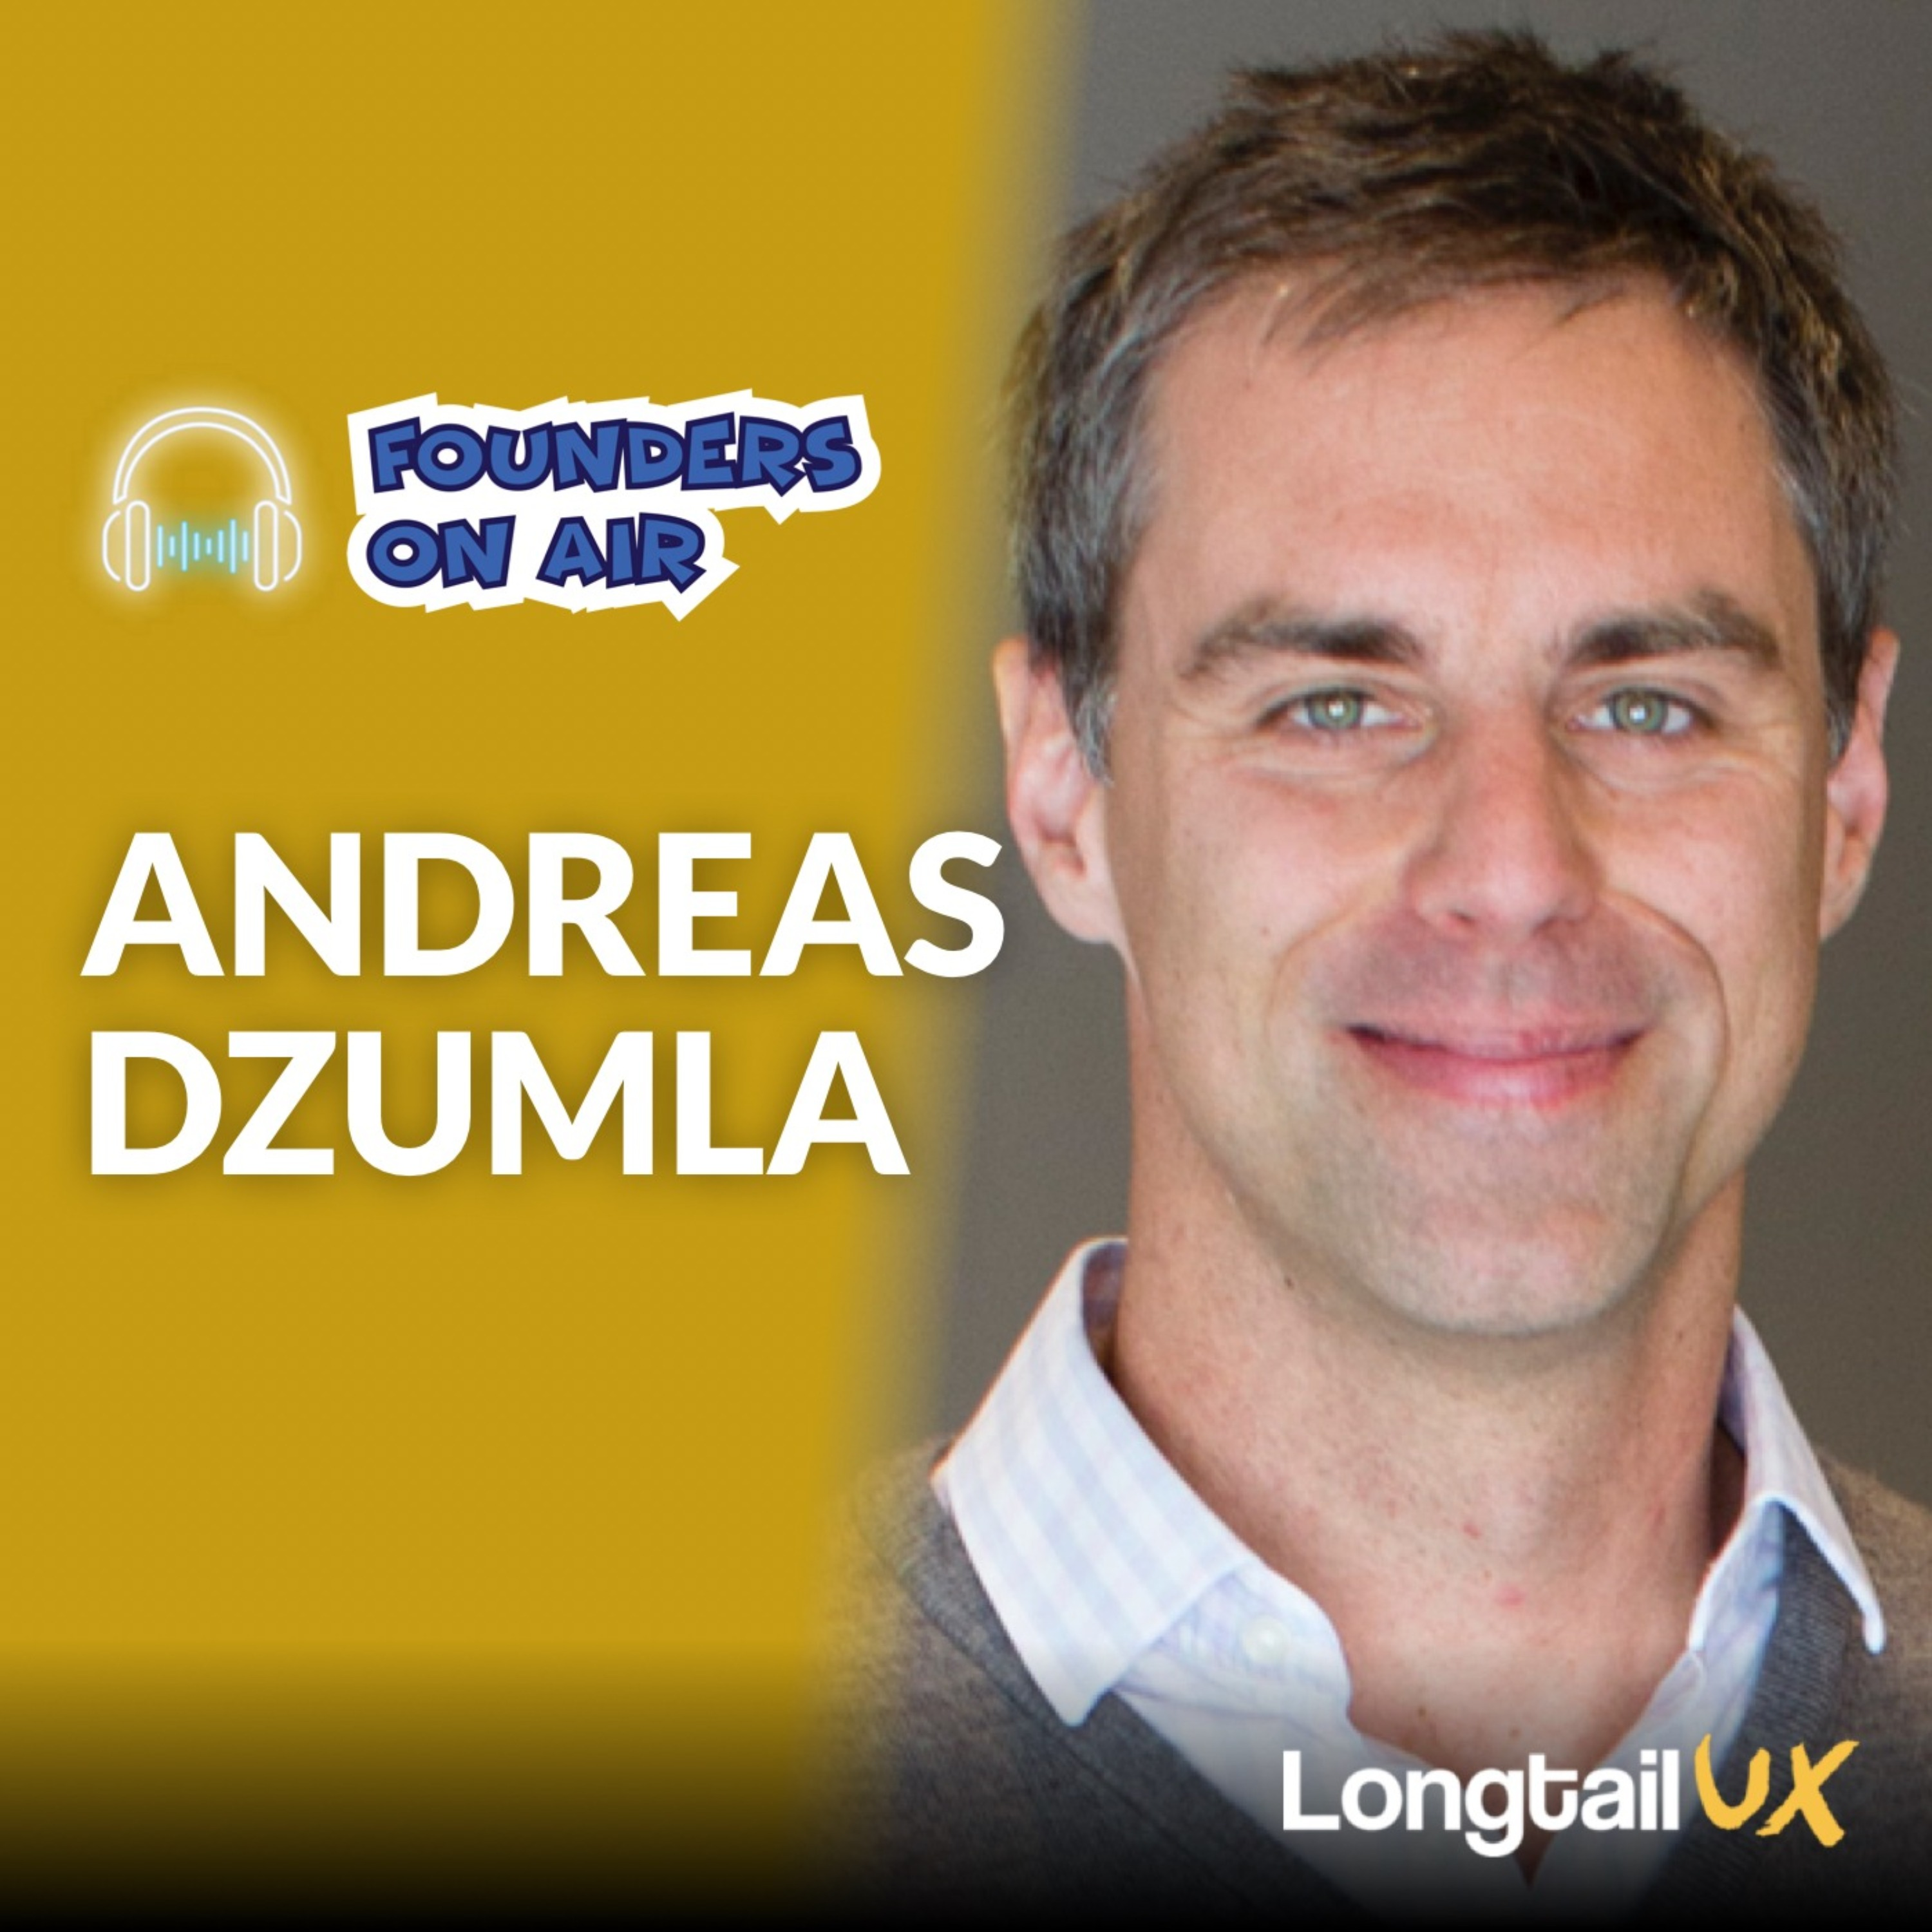 Interview with Andreas Dzumla, CEO @ LongtailUX (Business Podcast)